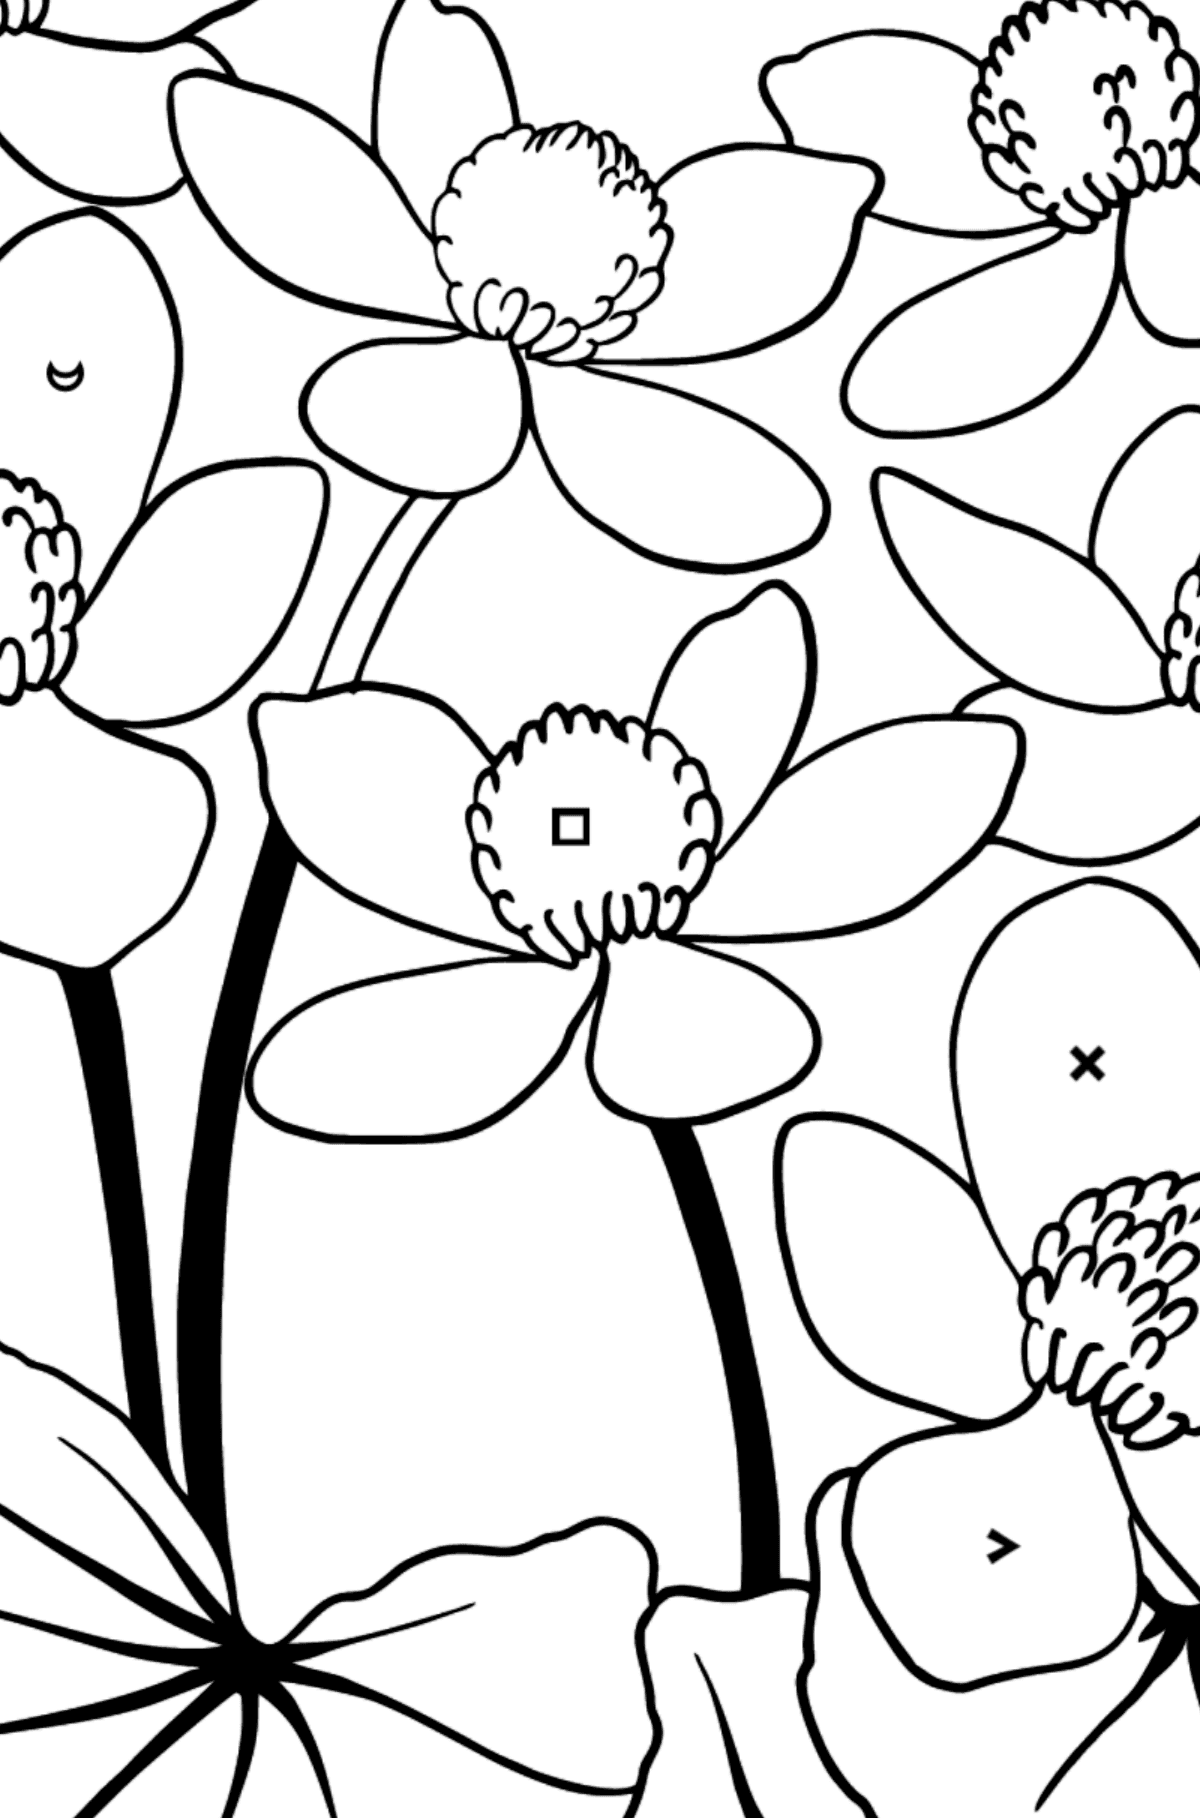 Flower Coloring Page - A Yellow and Red Marsh Marigold - Coloring by Symbols and Geometric Shapes for Kids